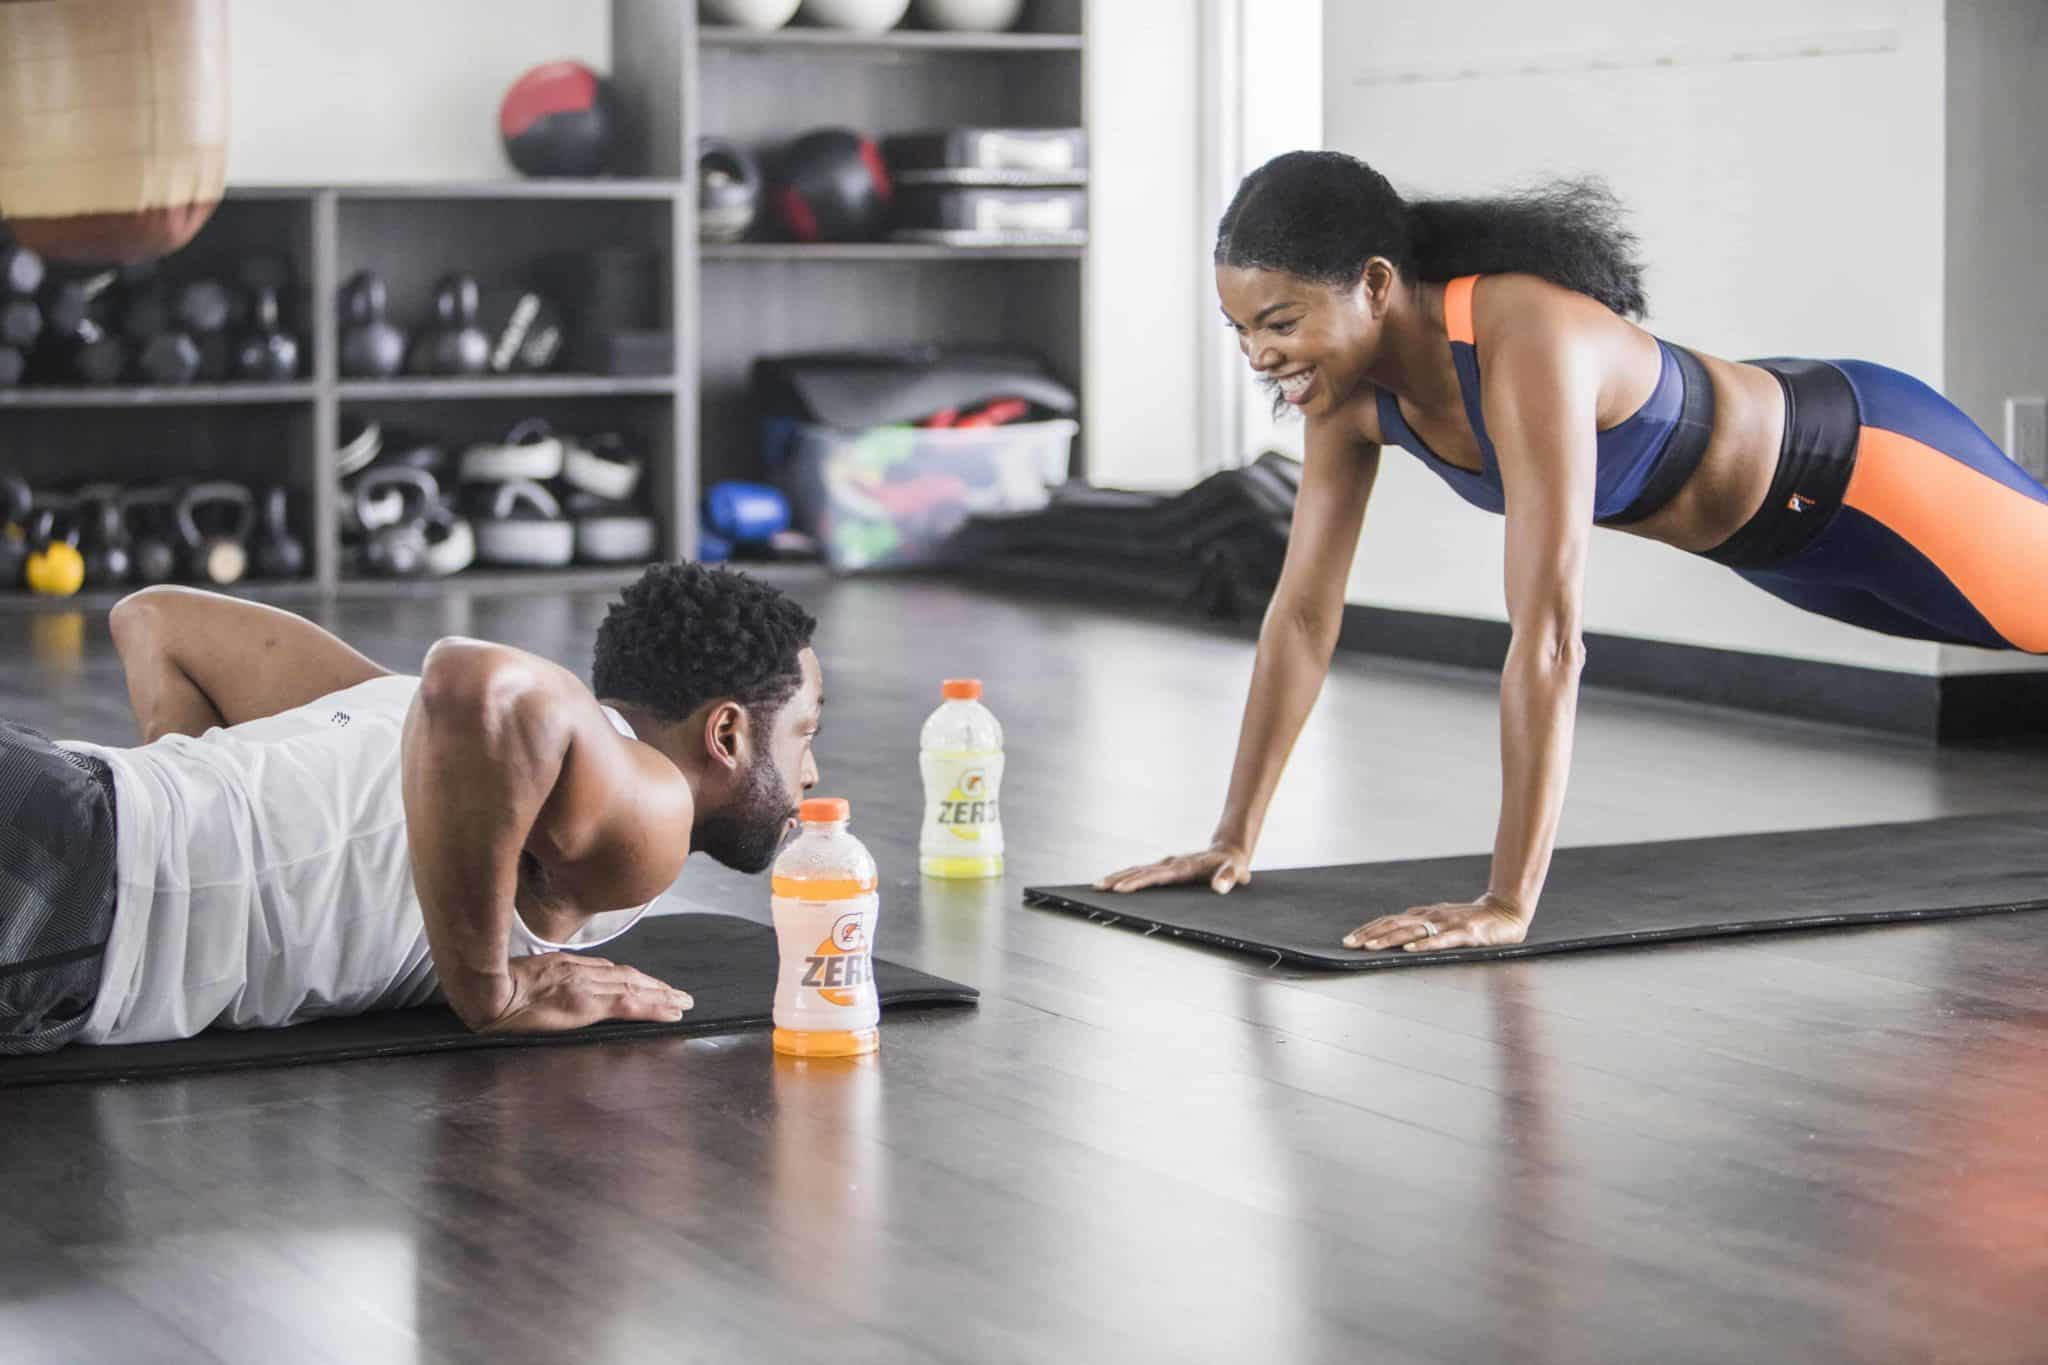 Gabrielle Union & Dwyane Wade Compete in New Gatorade Commercial